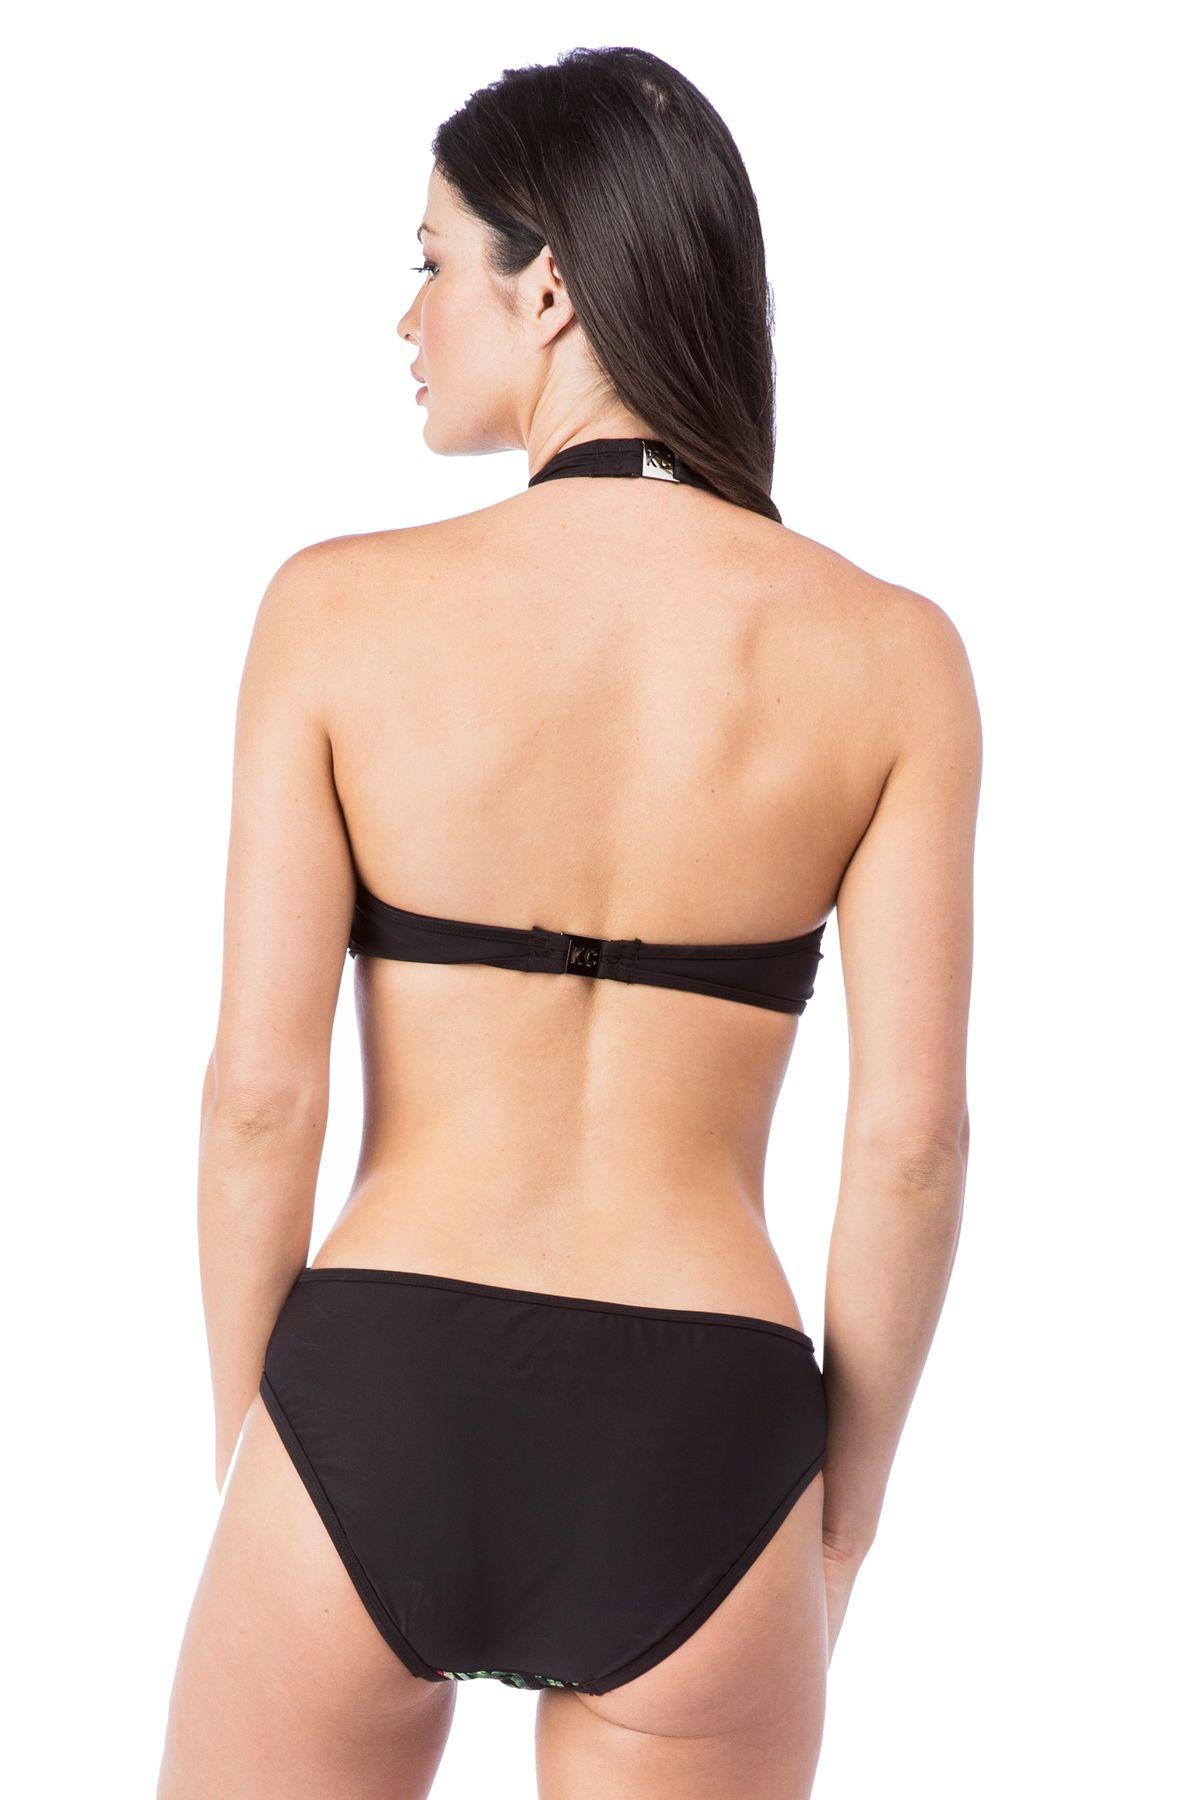 5ac6802c4f Kenneth Cole - Black After The Sun Sets High Neck Monokini One Piece  Swimsuit - Lyst. View fullscreen